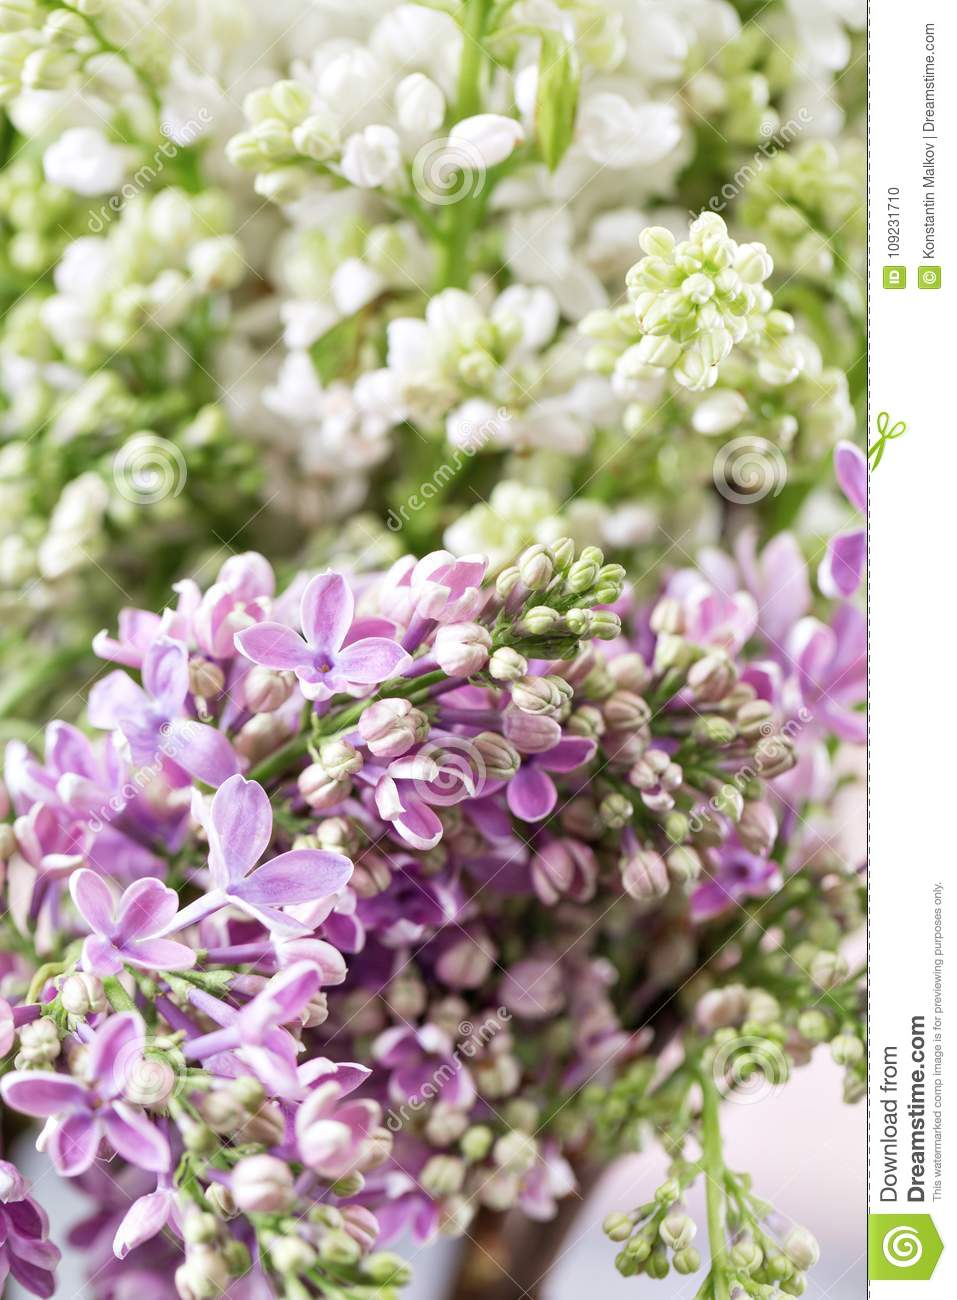 Macro Image Of Spring Violet And White Lilac Flowers Abstract Soft